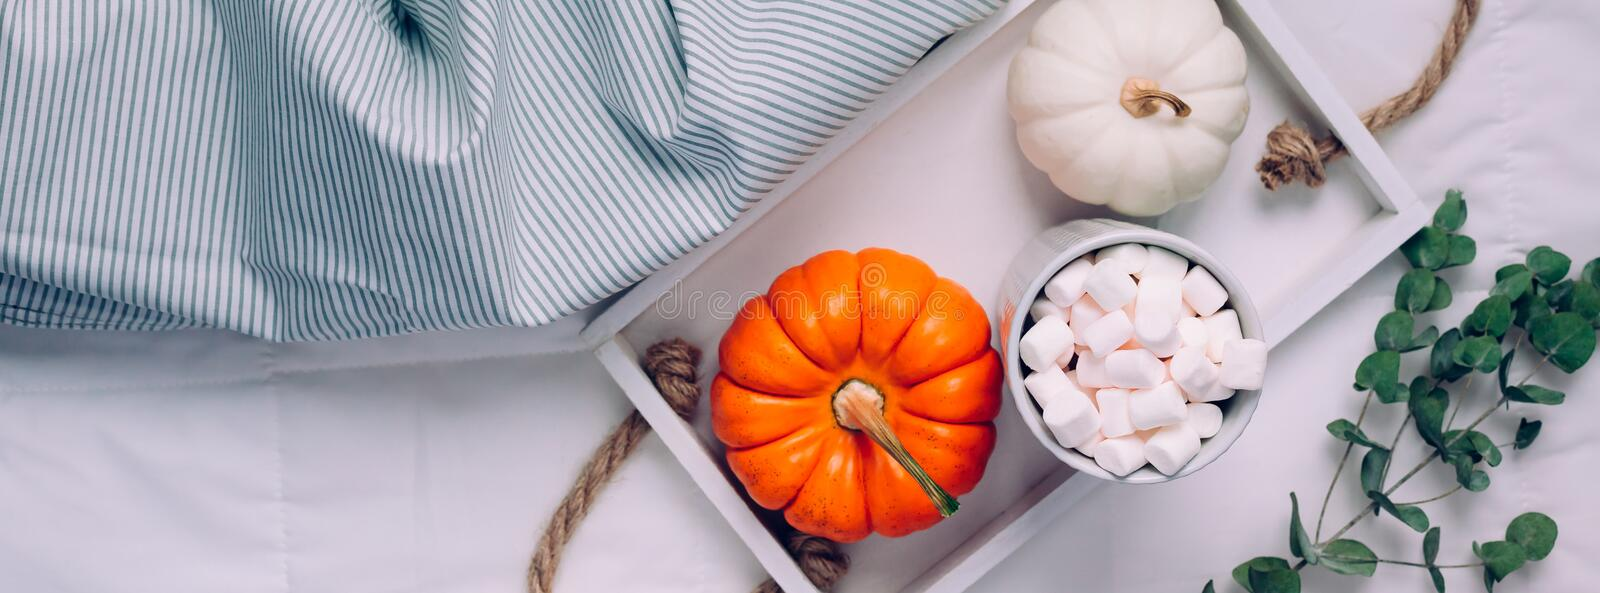 Cozy warm home comfort morning royalty free stock image